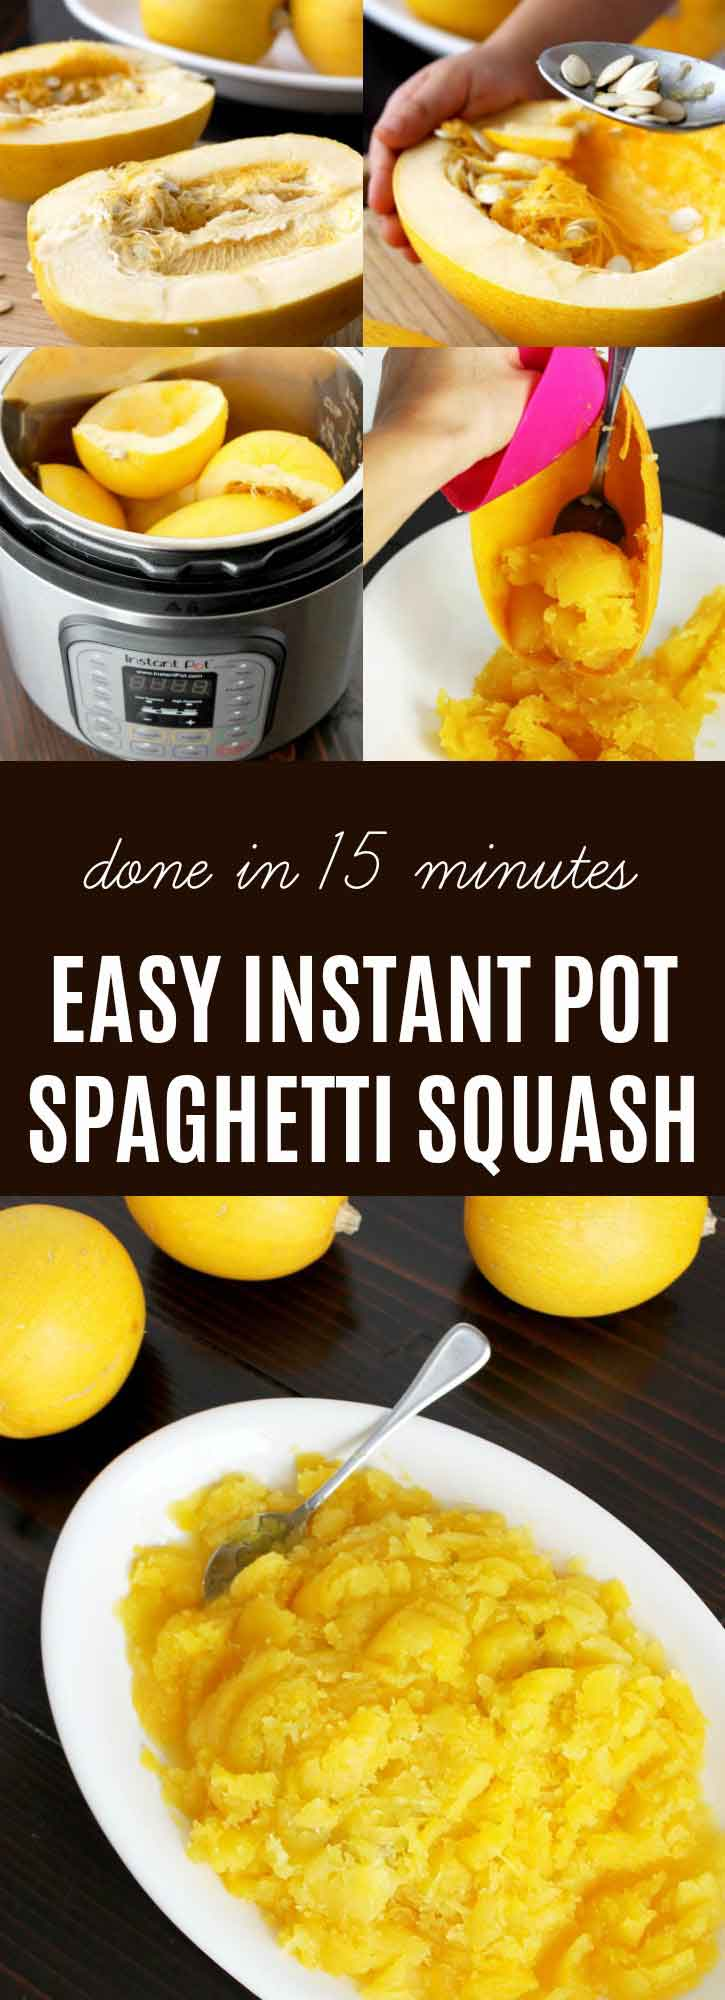 How to Cook Spaghetti Squash {Ultimate Guide} | Are you ready to learn How to Cook Spaghetti Squash? This is the ultimate guide to making perfect squash! Bake, slow cook, pressure cook, or use an Instant Pot. Plus learn my tips & tricks for freezing spaghetti squash. | thenourishedfamily.com